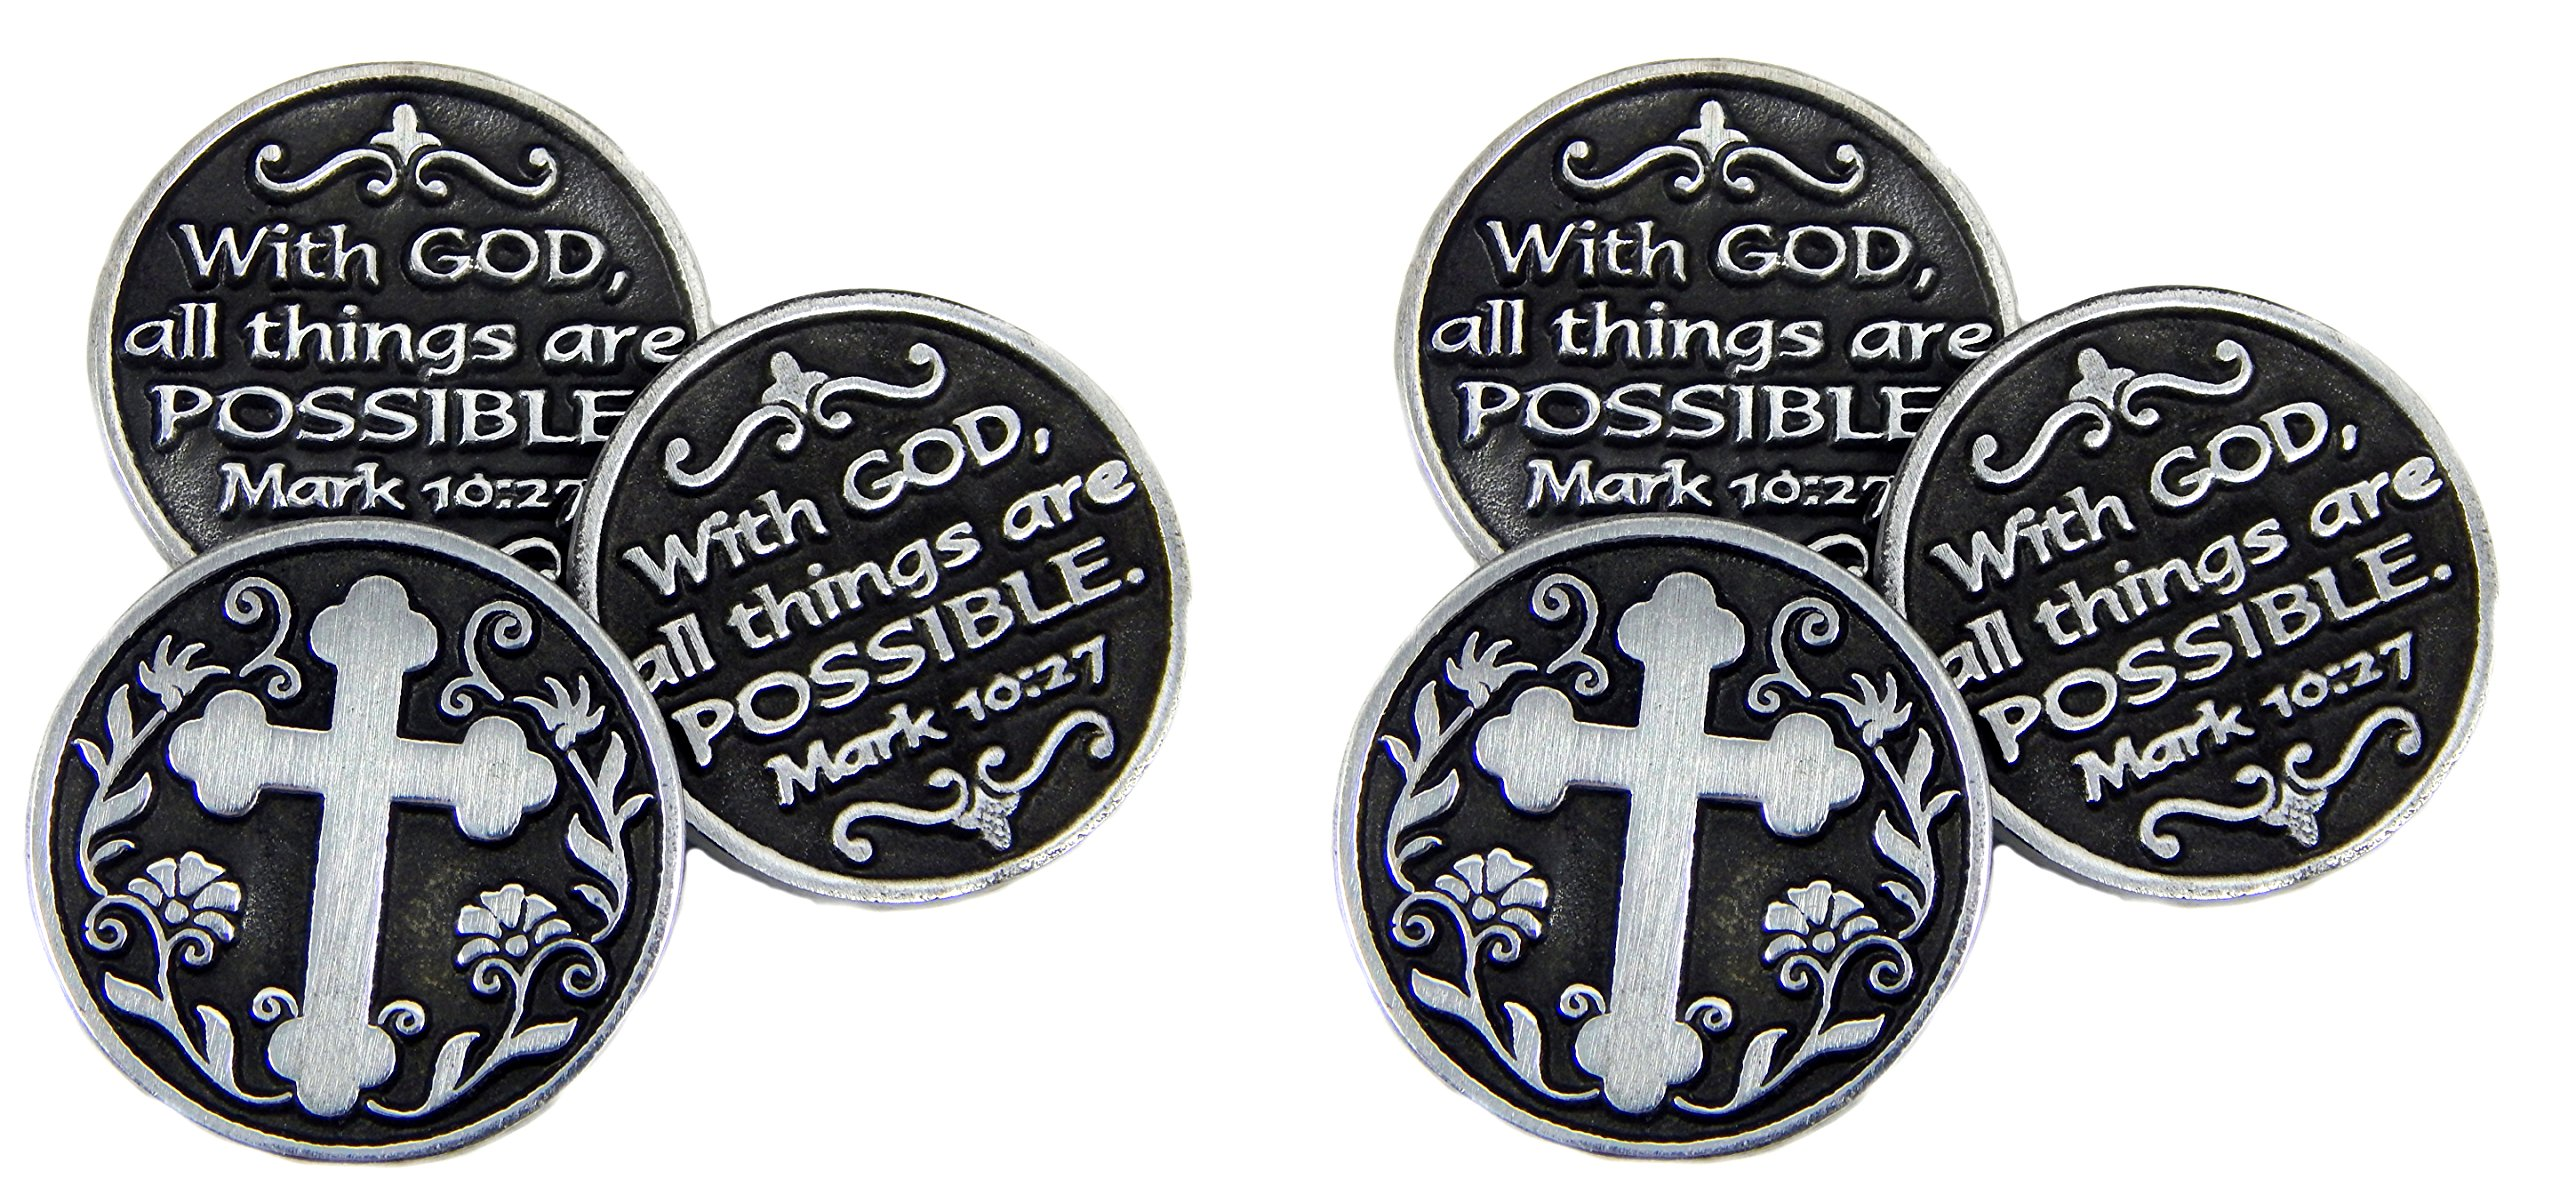 Pewter POCKET Tokens WITH GOD All Things ARE Possible - MARK 10:27 - 1'' Metal Coin - INSPIRATIONAL Gift - KEEPSAKE - Set of 6 by CA